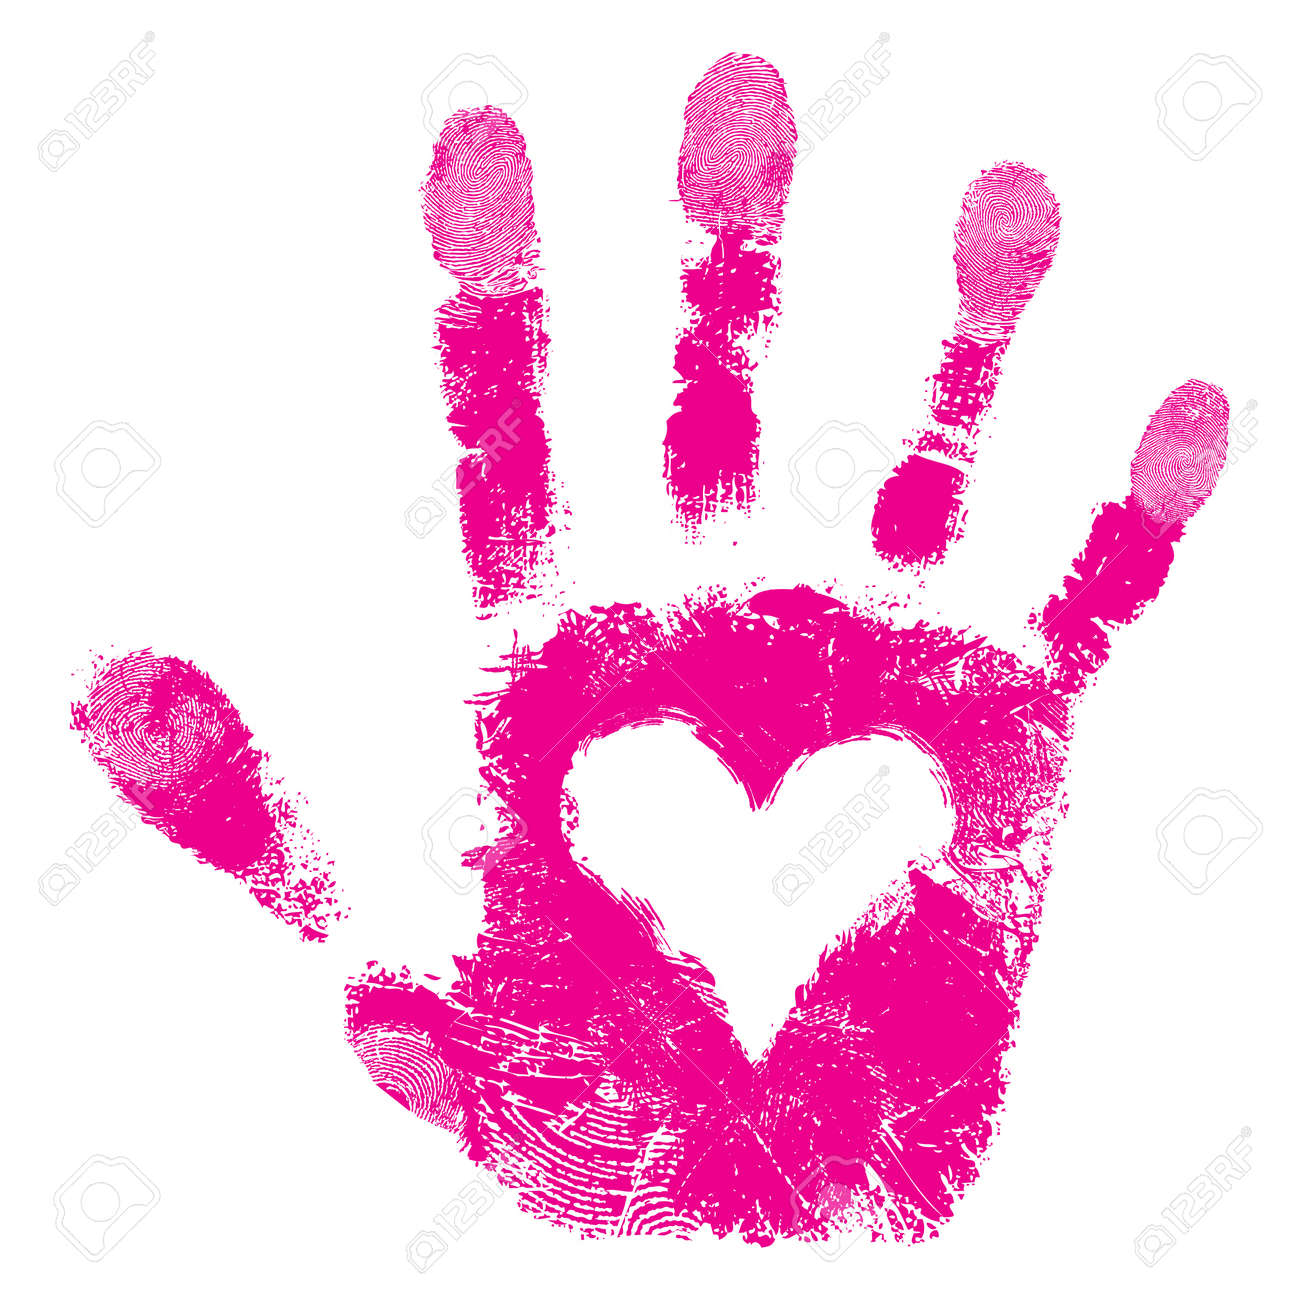 heart in hand print people support isolated cute skin texture pattern love valentine background - Cute Pictures To Print